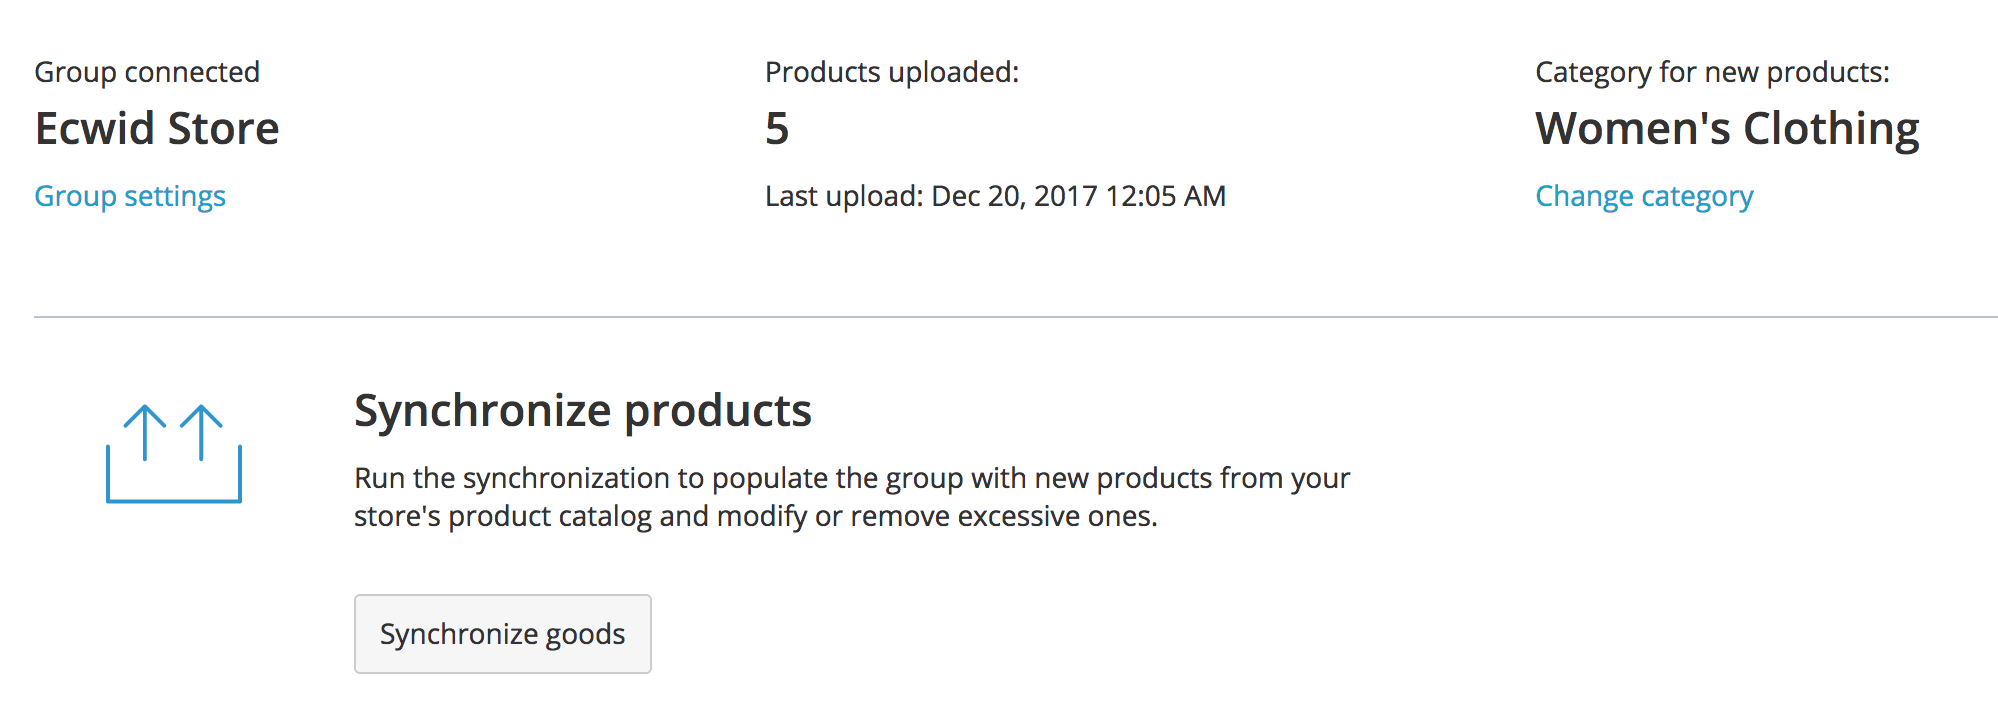 Products_uploaded.png